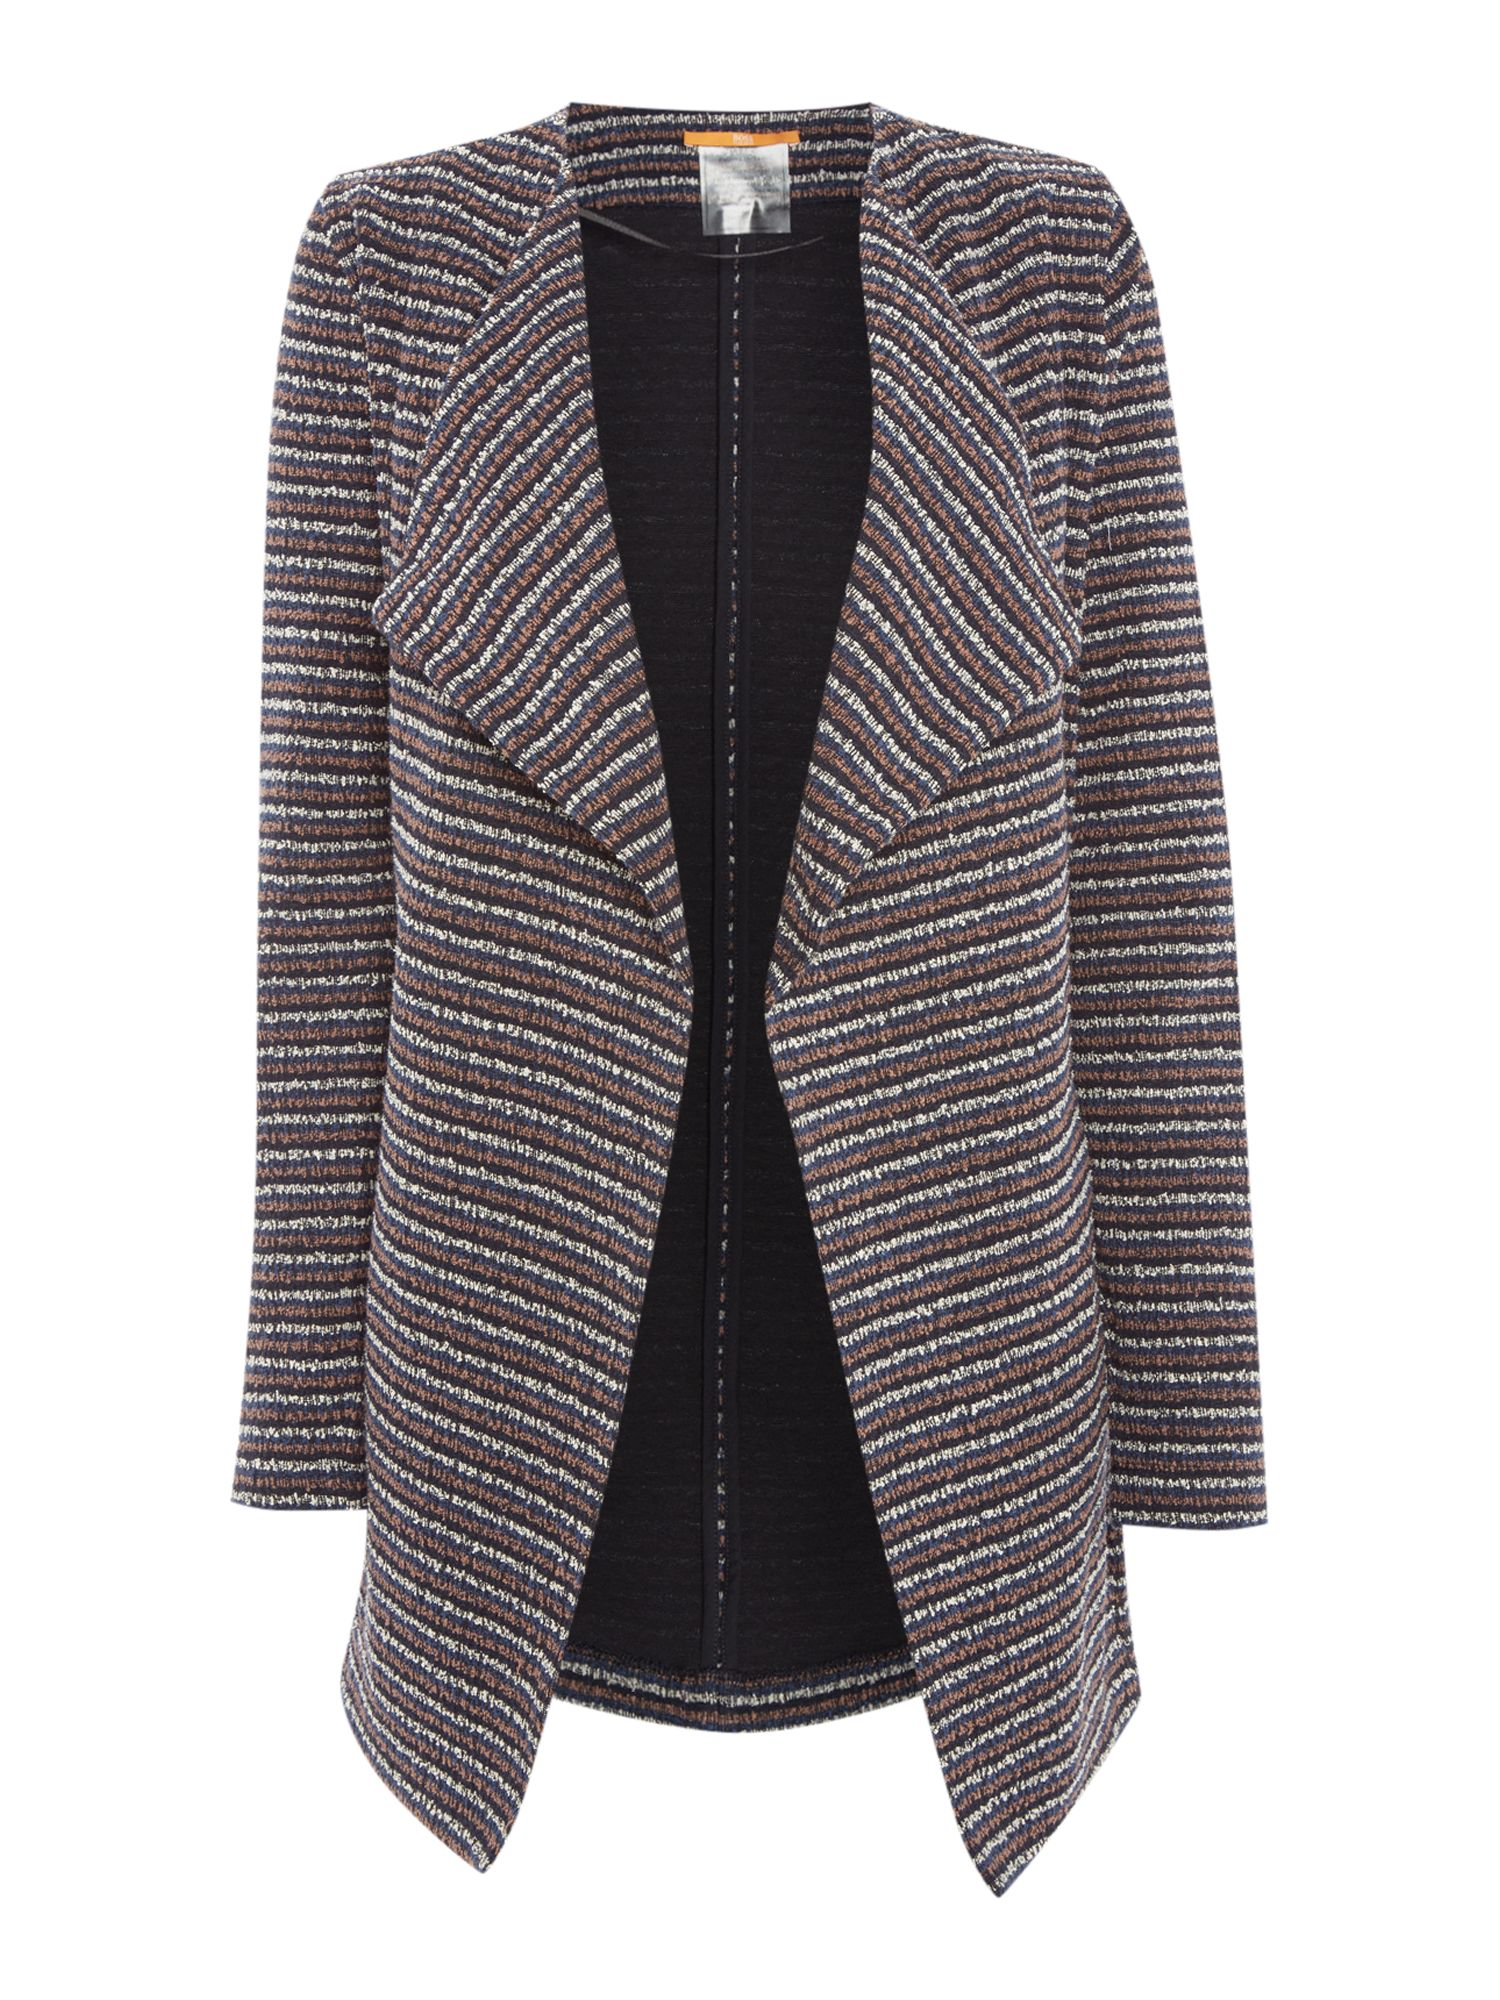 Hugo Boss Tivera Knitted Jacket in Dark Blue, Dark Blue